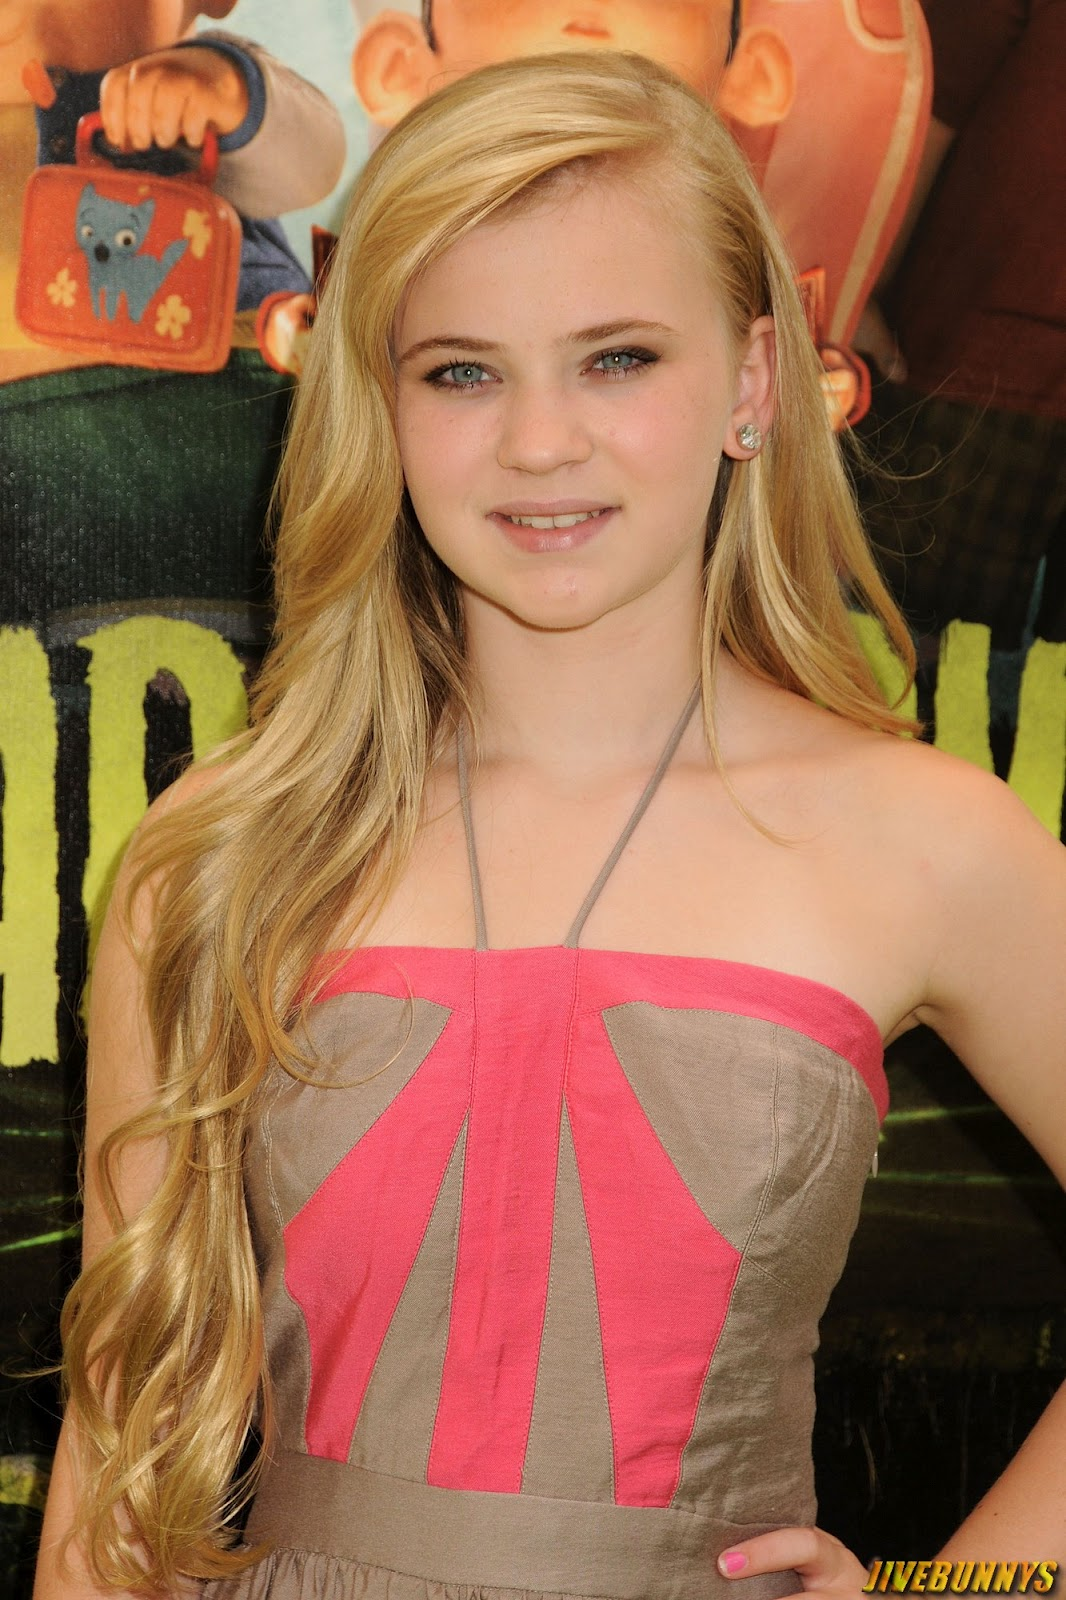 Sierra McCormick Ant Farm Actress Photos Gallery 1Sierra Mccormick Pool